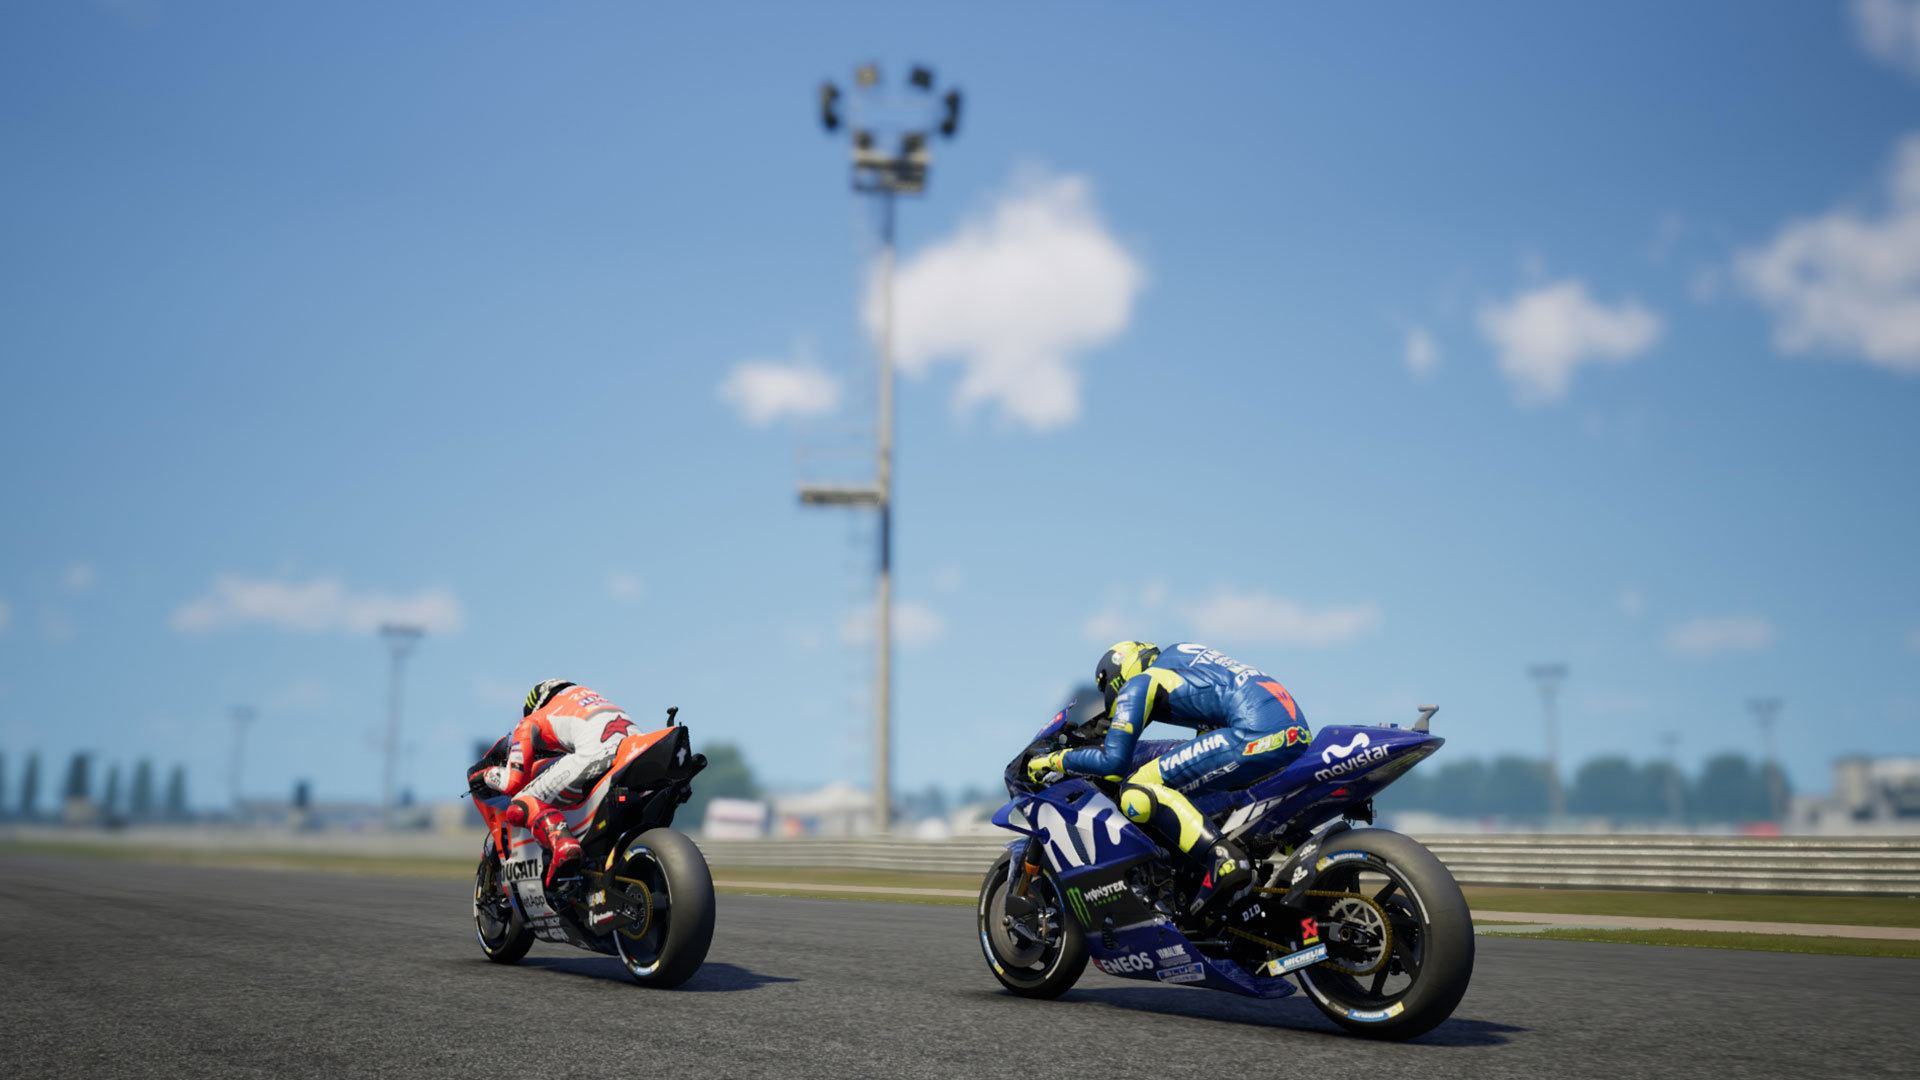 motogp18-screenshots-03-ps4-us-07june201